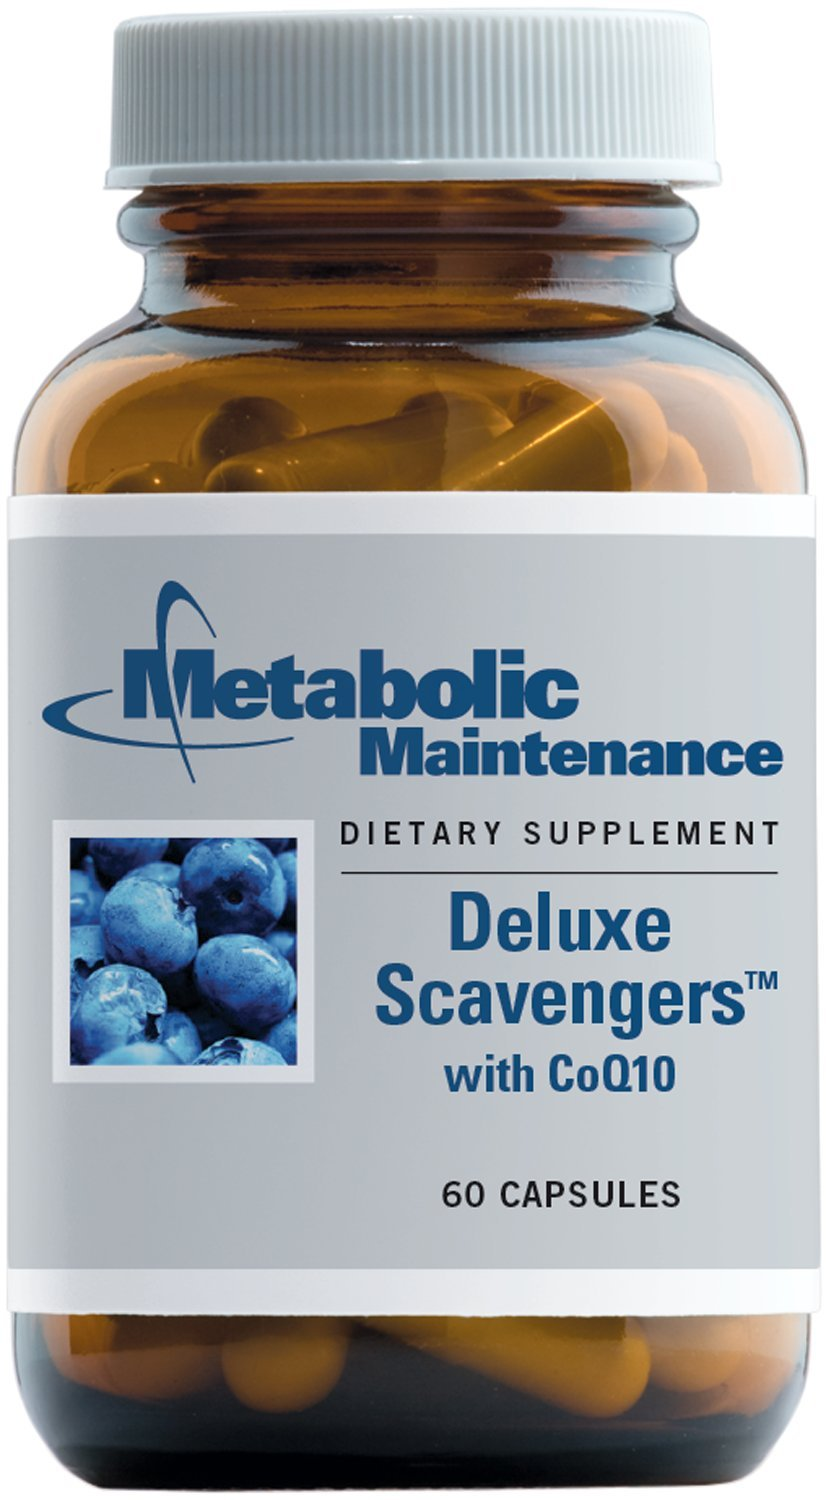 Metabolic Maintenance - Deluxe Scavengers - Botanical formula with CoQ10 + Pomegranate Extract, 60 Capsules